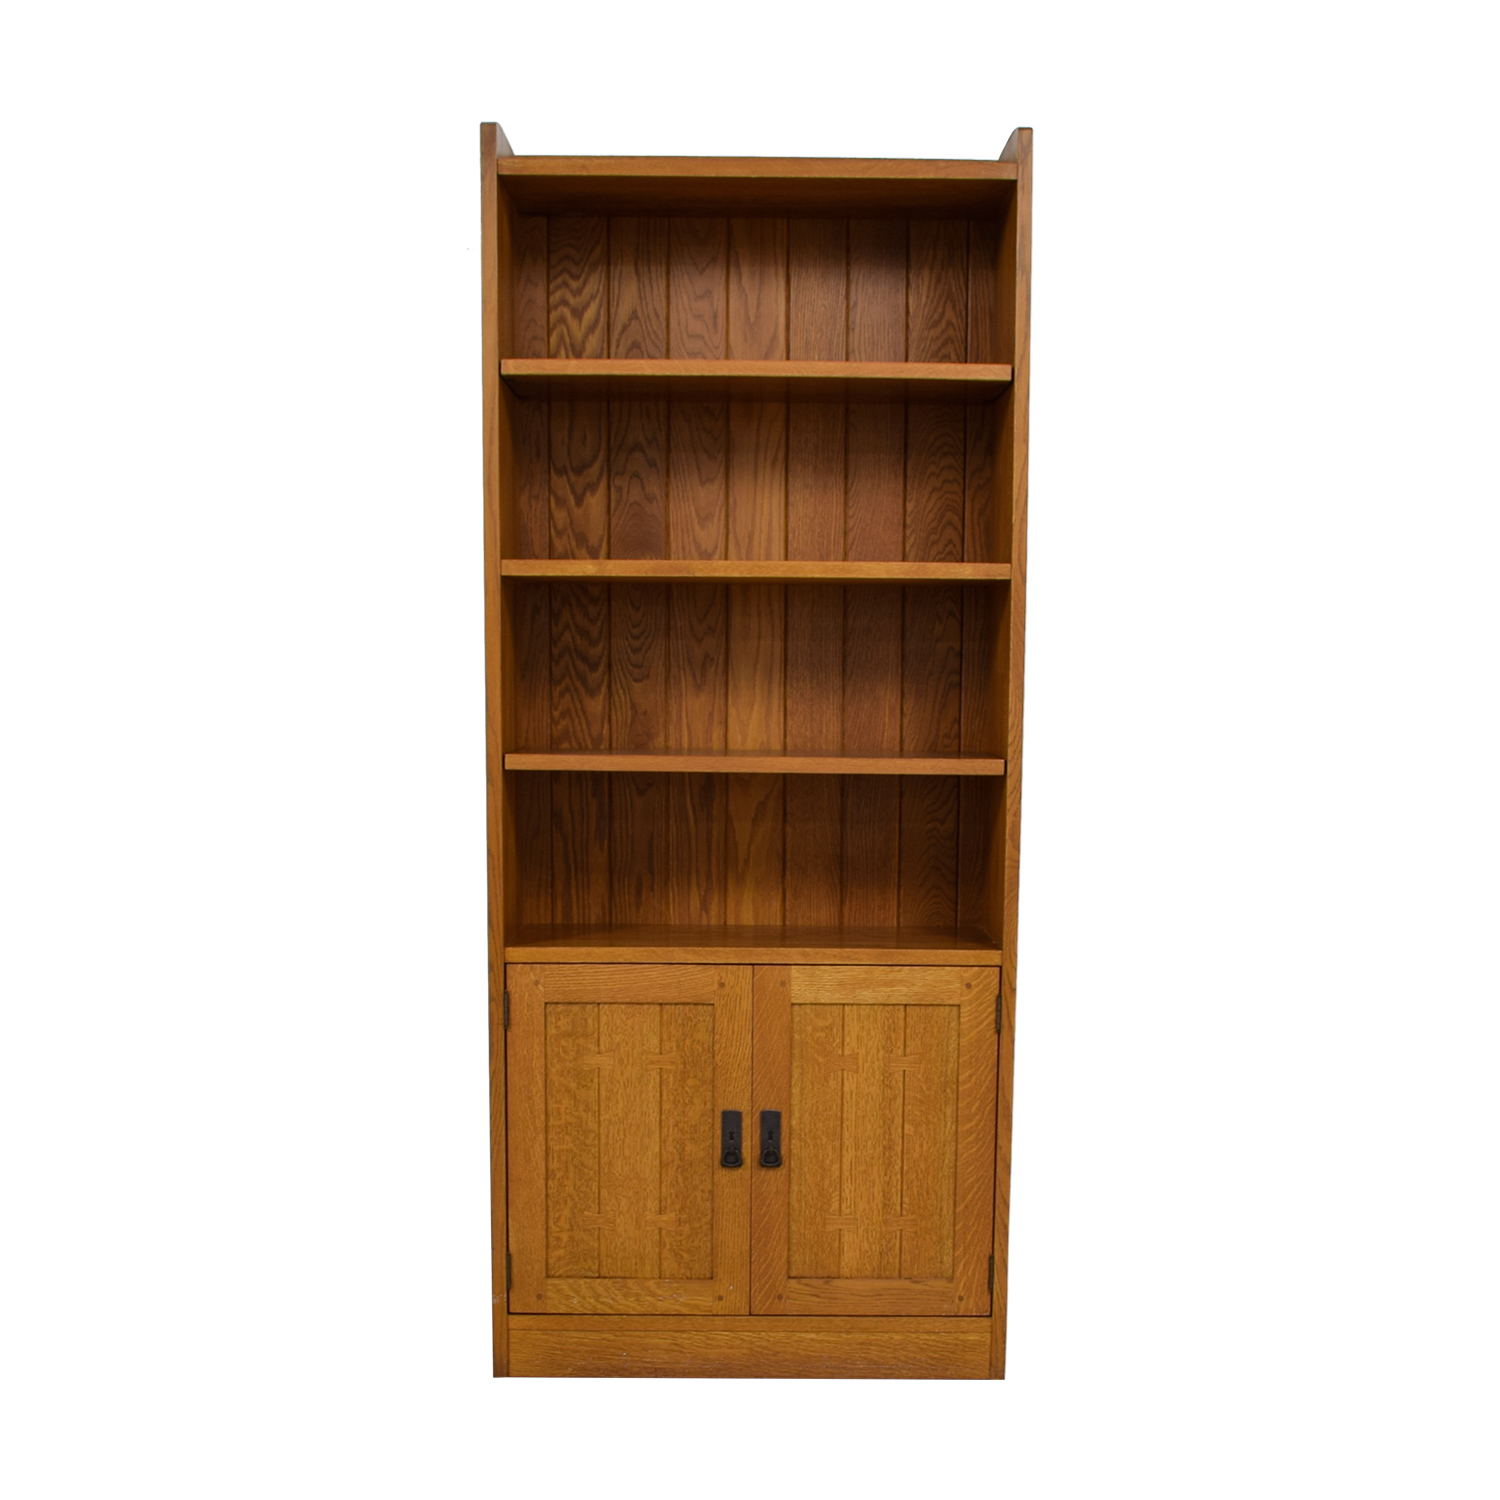 buy Stickley Stickley Wood Bookcase with Storage online